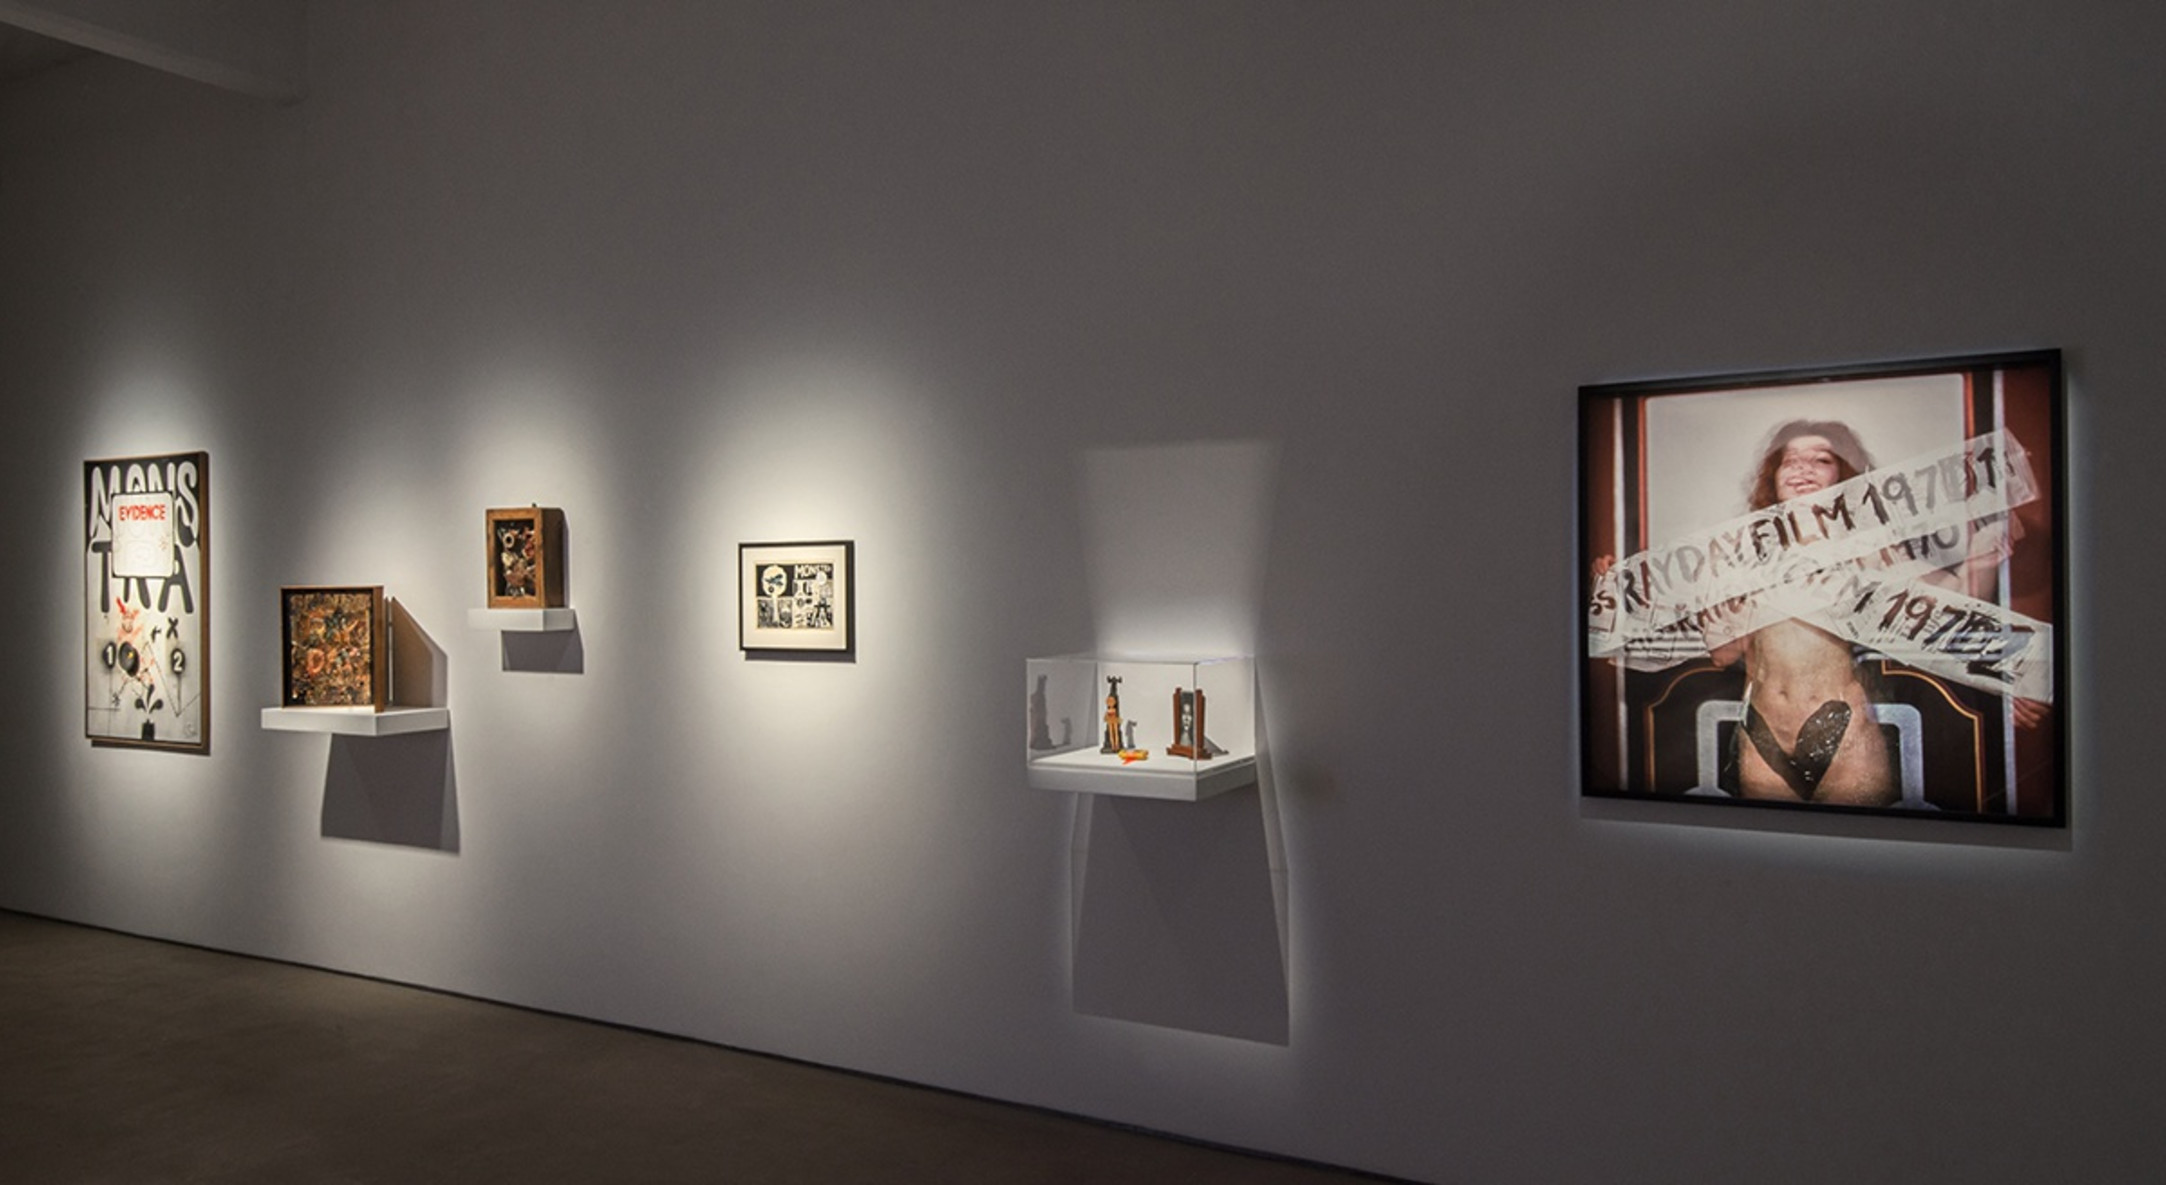 Installation view of Jeff Keen, Rayday Film at Hales London